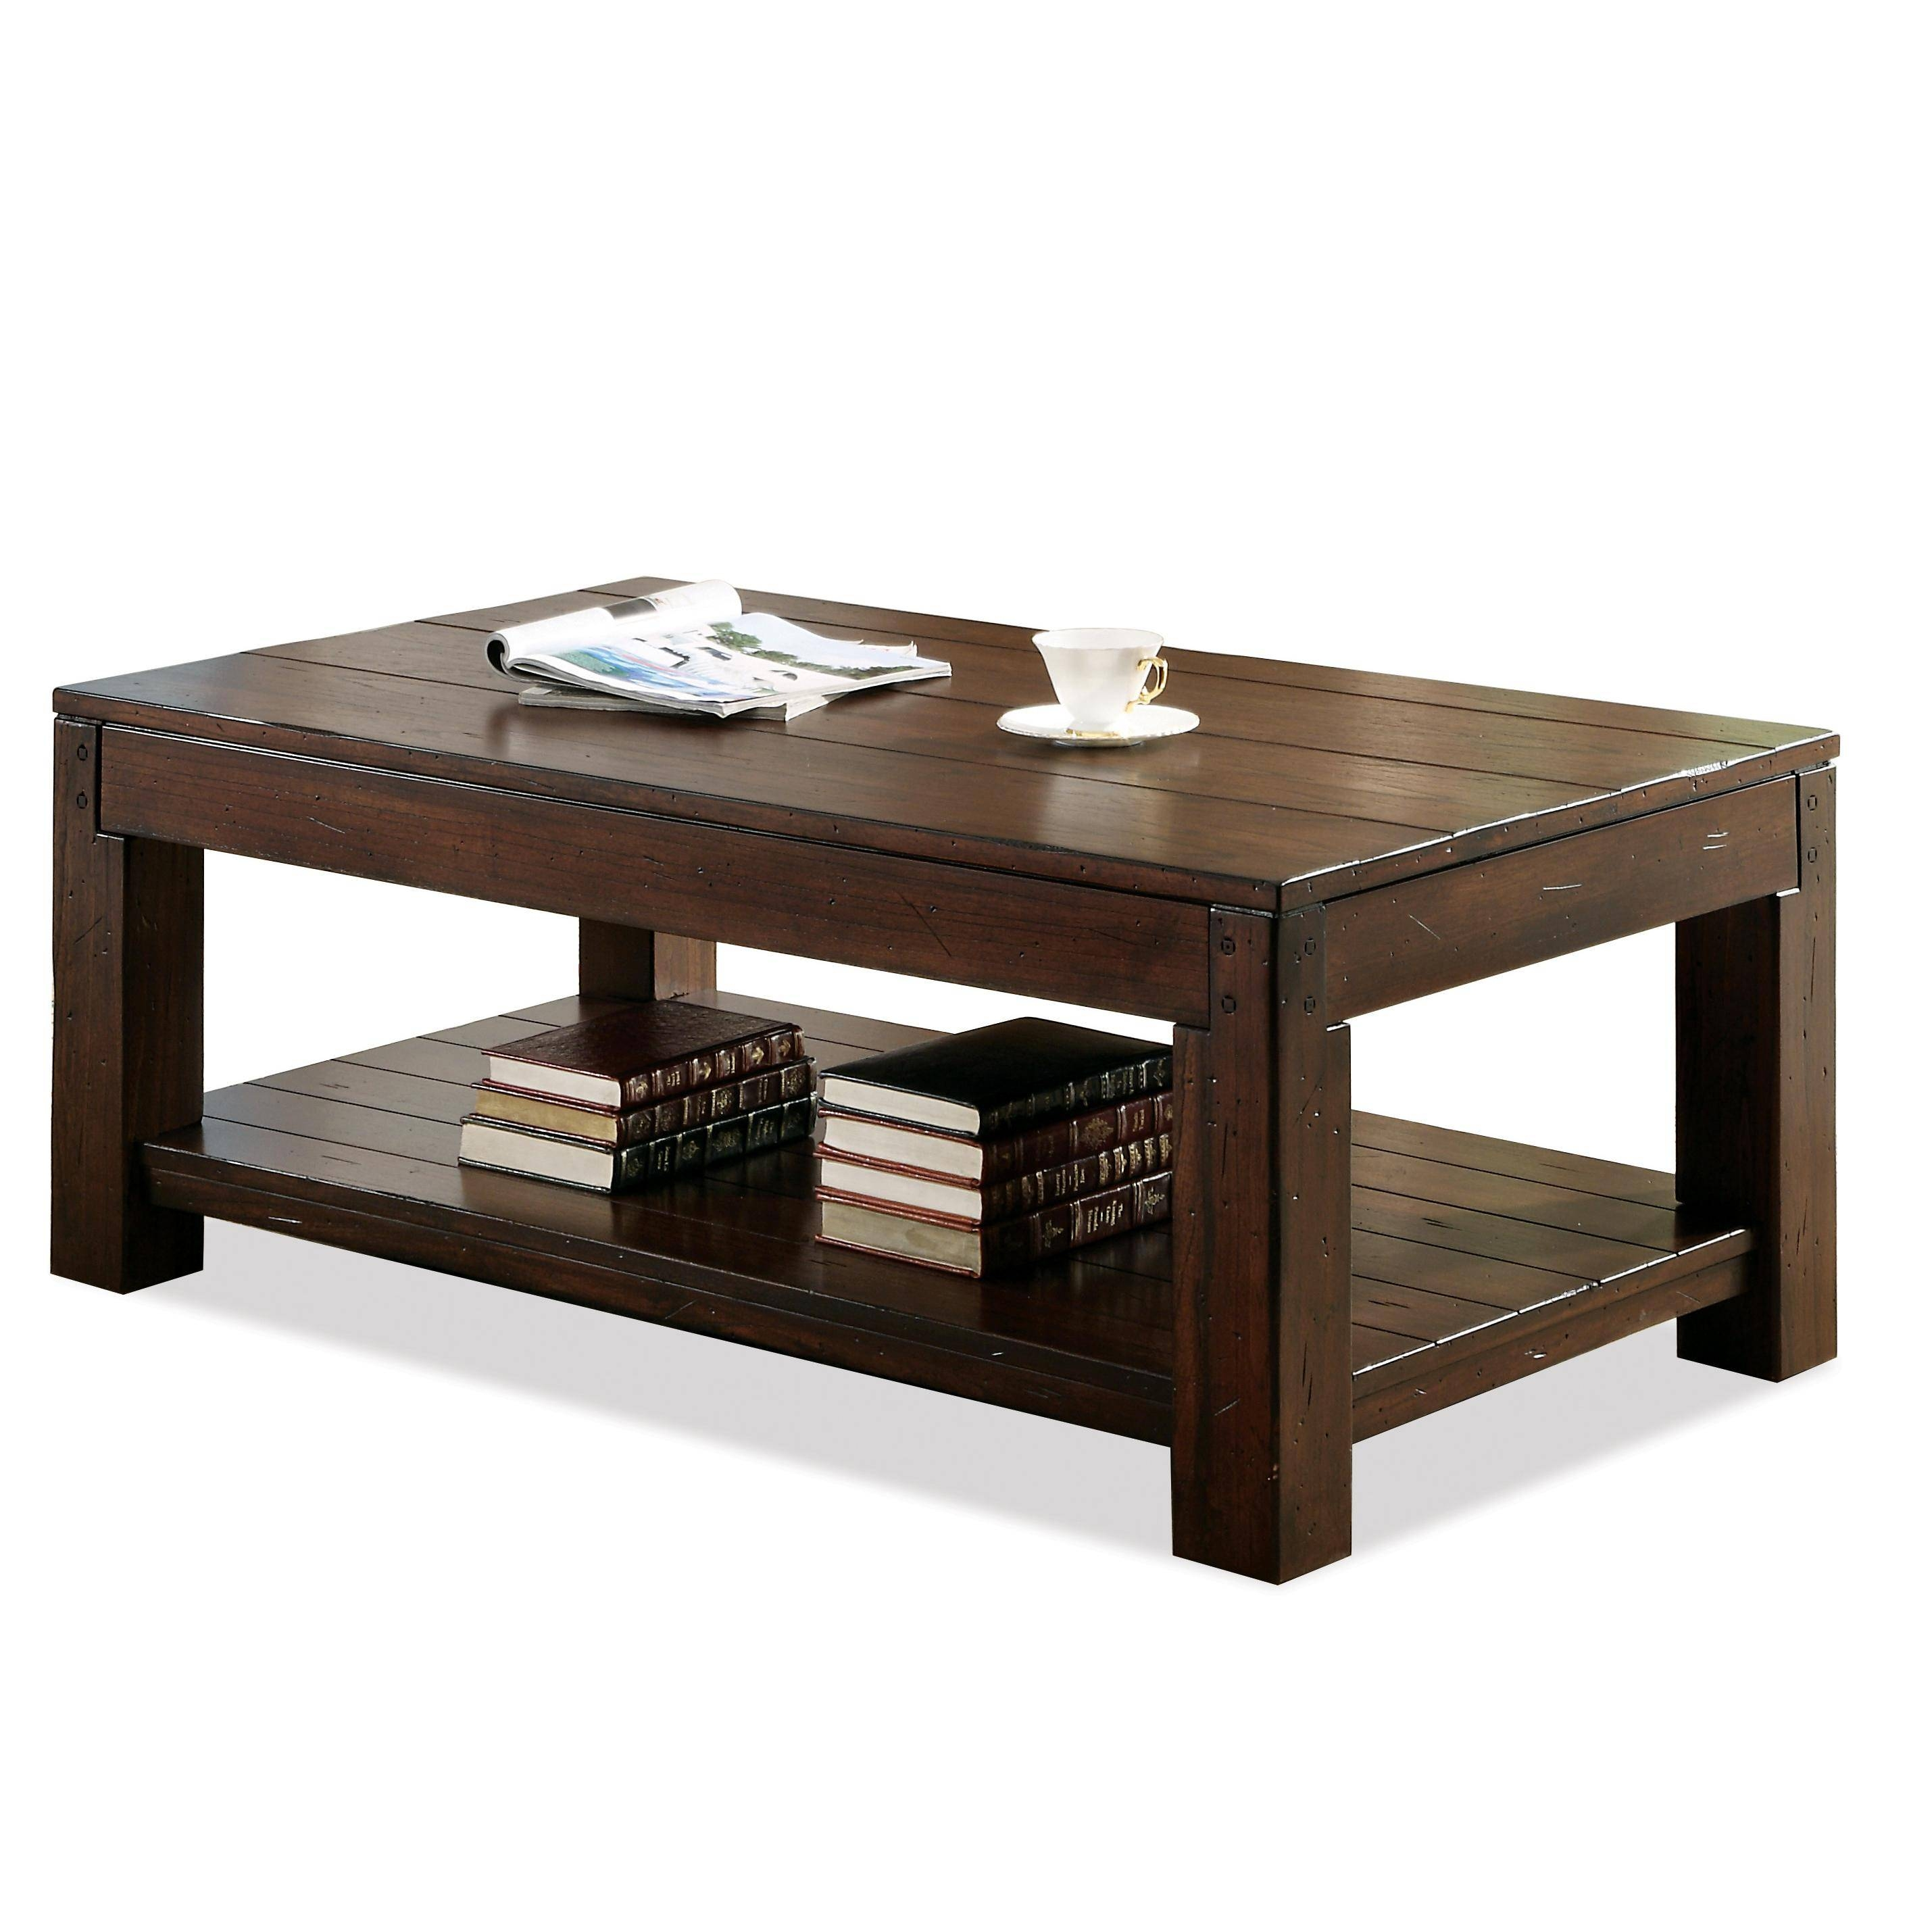 Rectangular Coffee Table With Fixed Lower Shelf And Block Legs with regard to Coffee Tables With Shelves (Image 27 of 30)